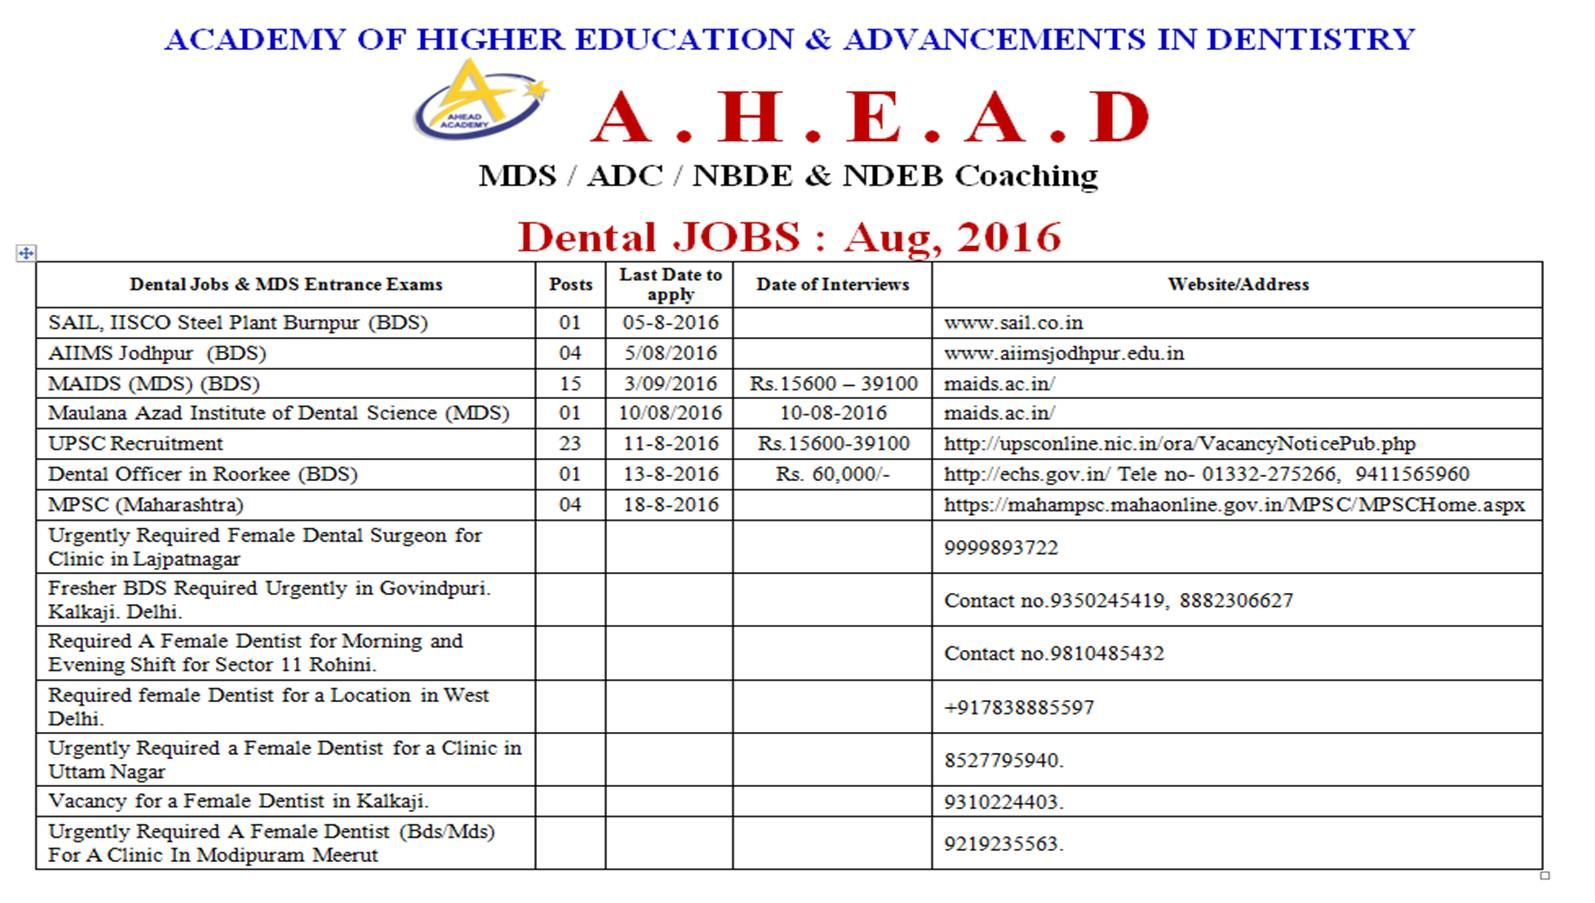 Various govt jobs for bds 2016 for them in government hospitals dental college and